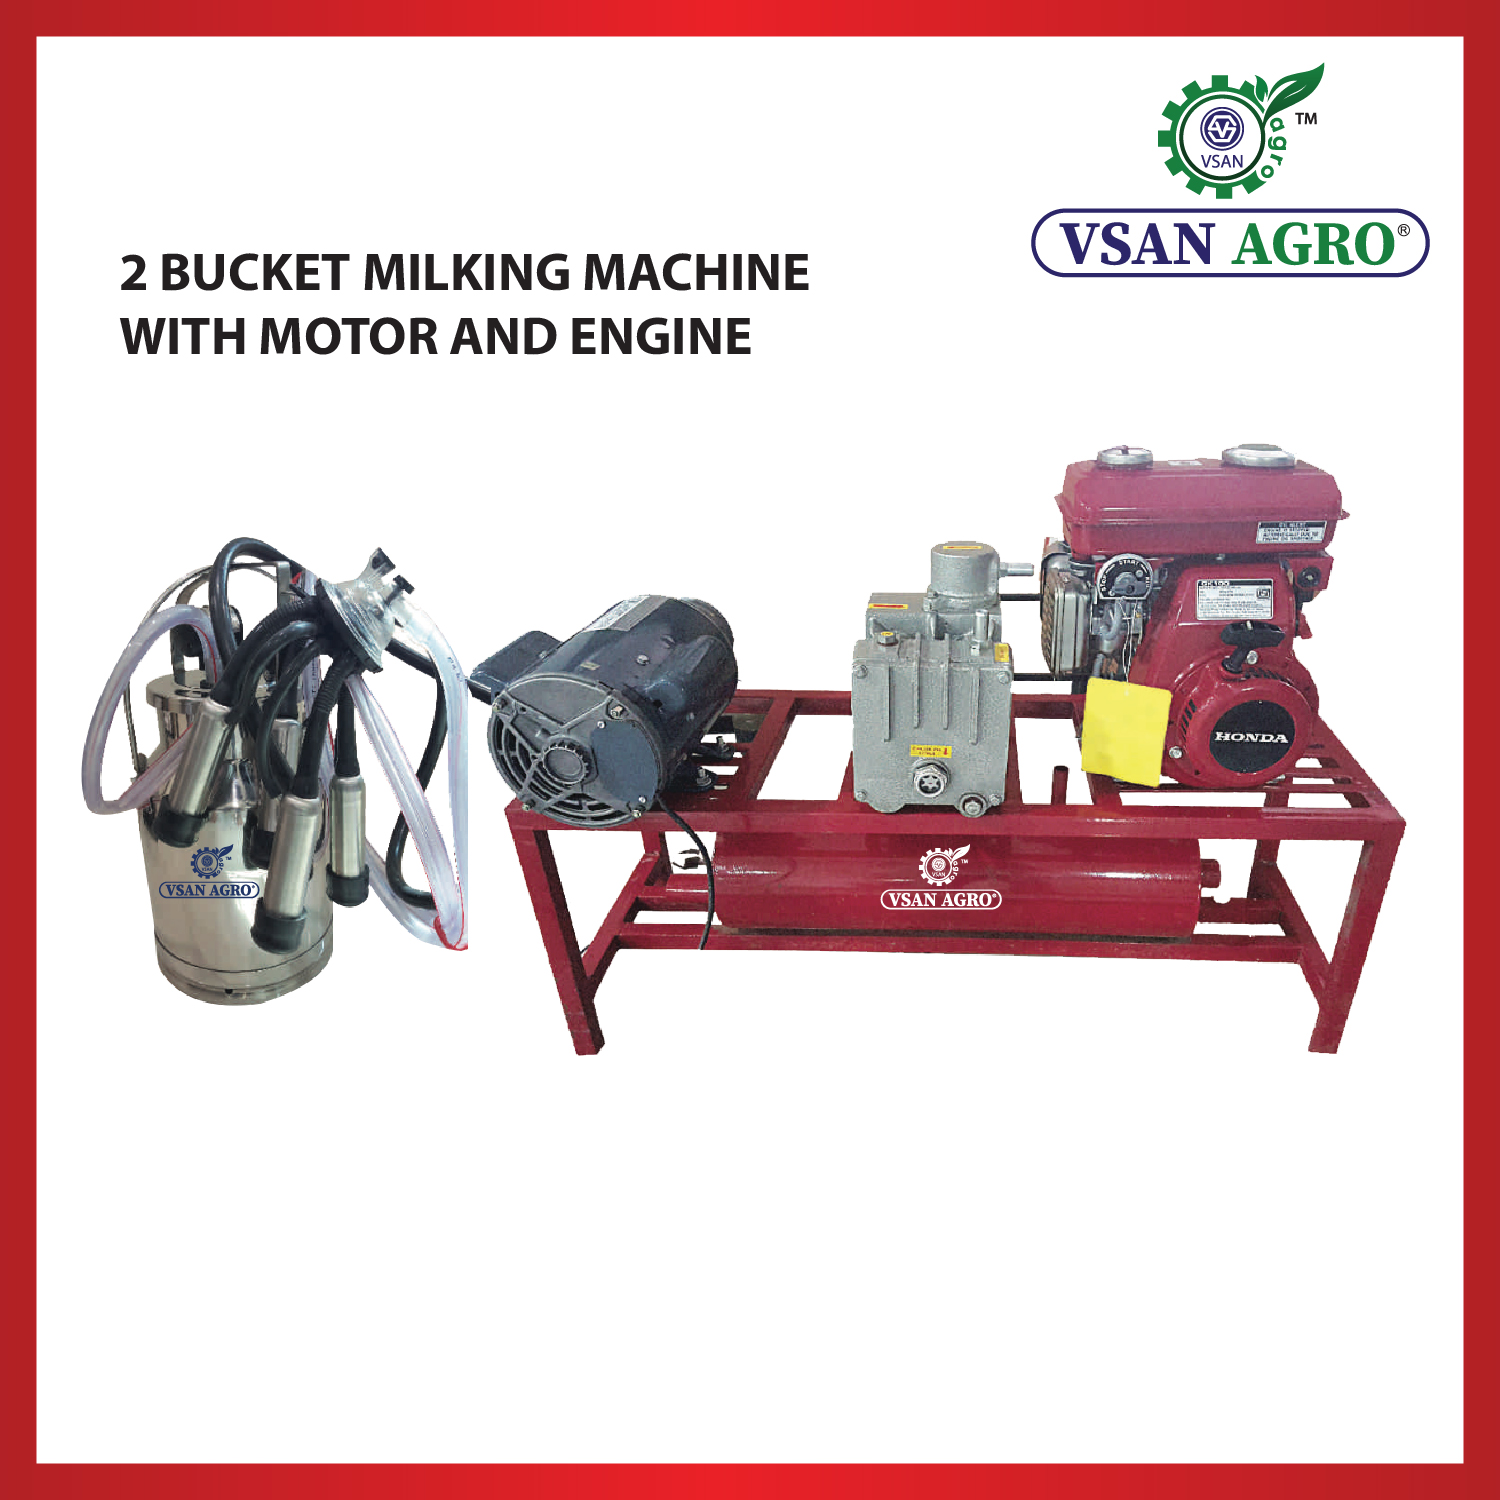 2 Bucket milking machine with engine and motor